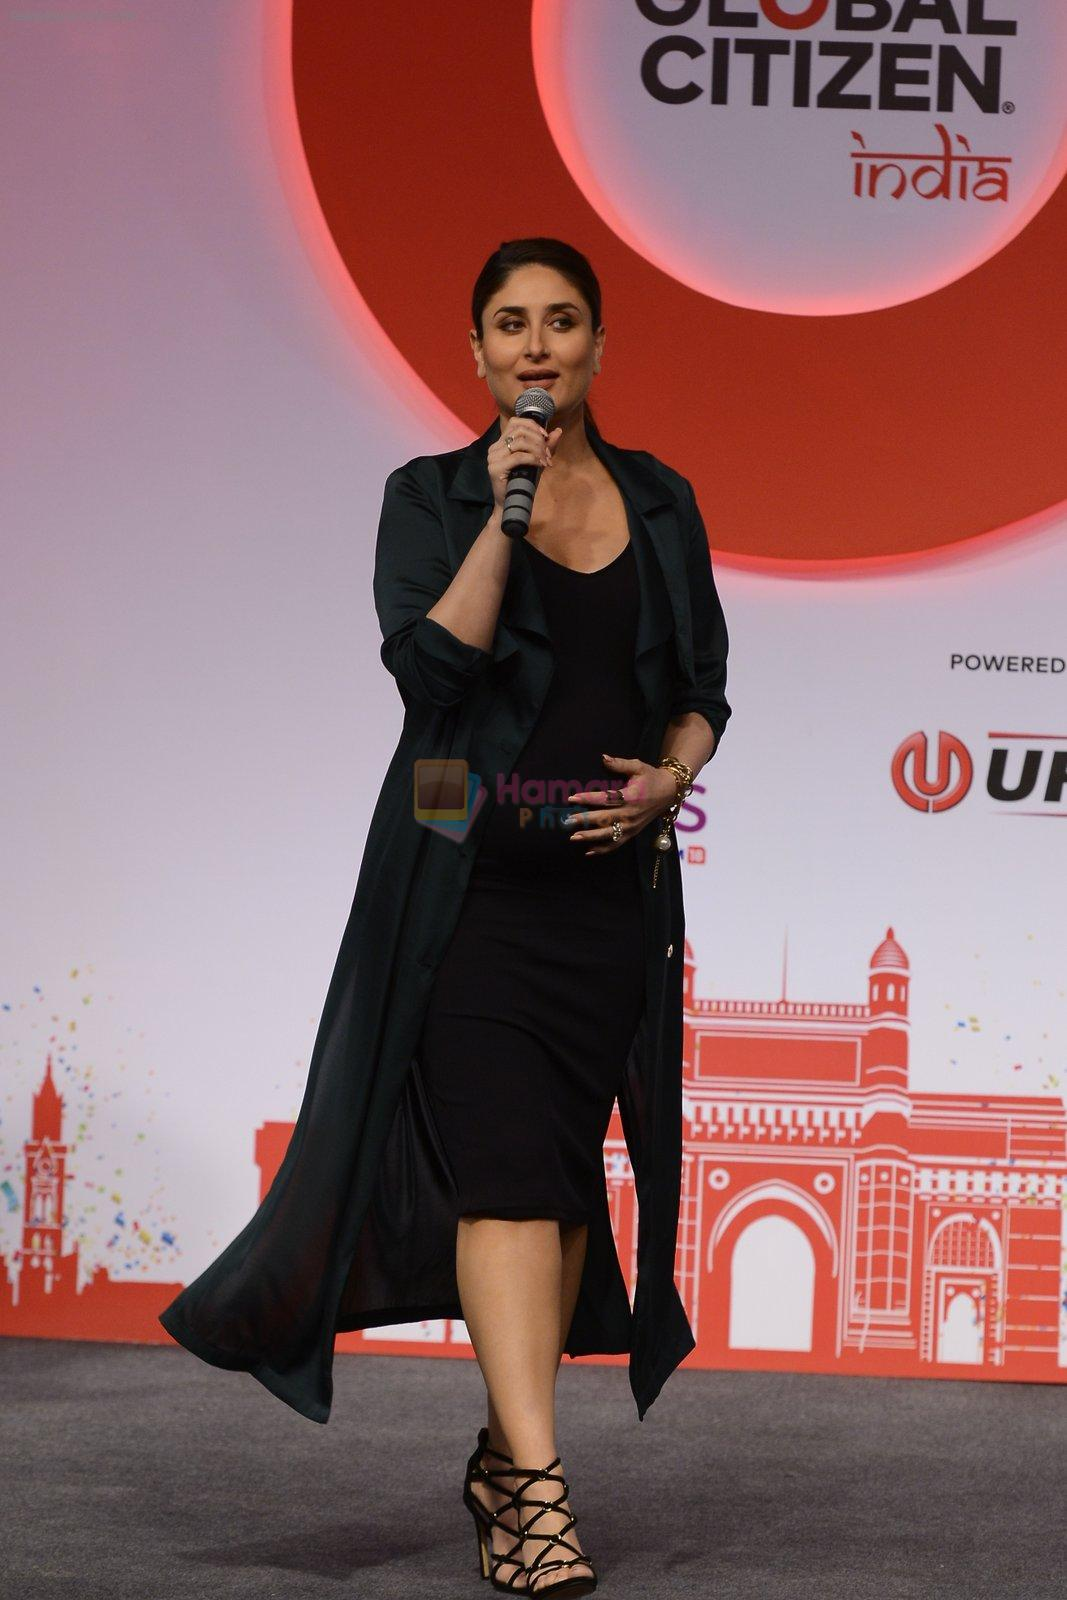 Kareena Kapoor Khan at the launch of Global Citizen India on 11th Sept 2016